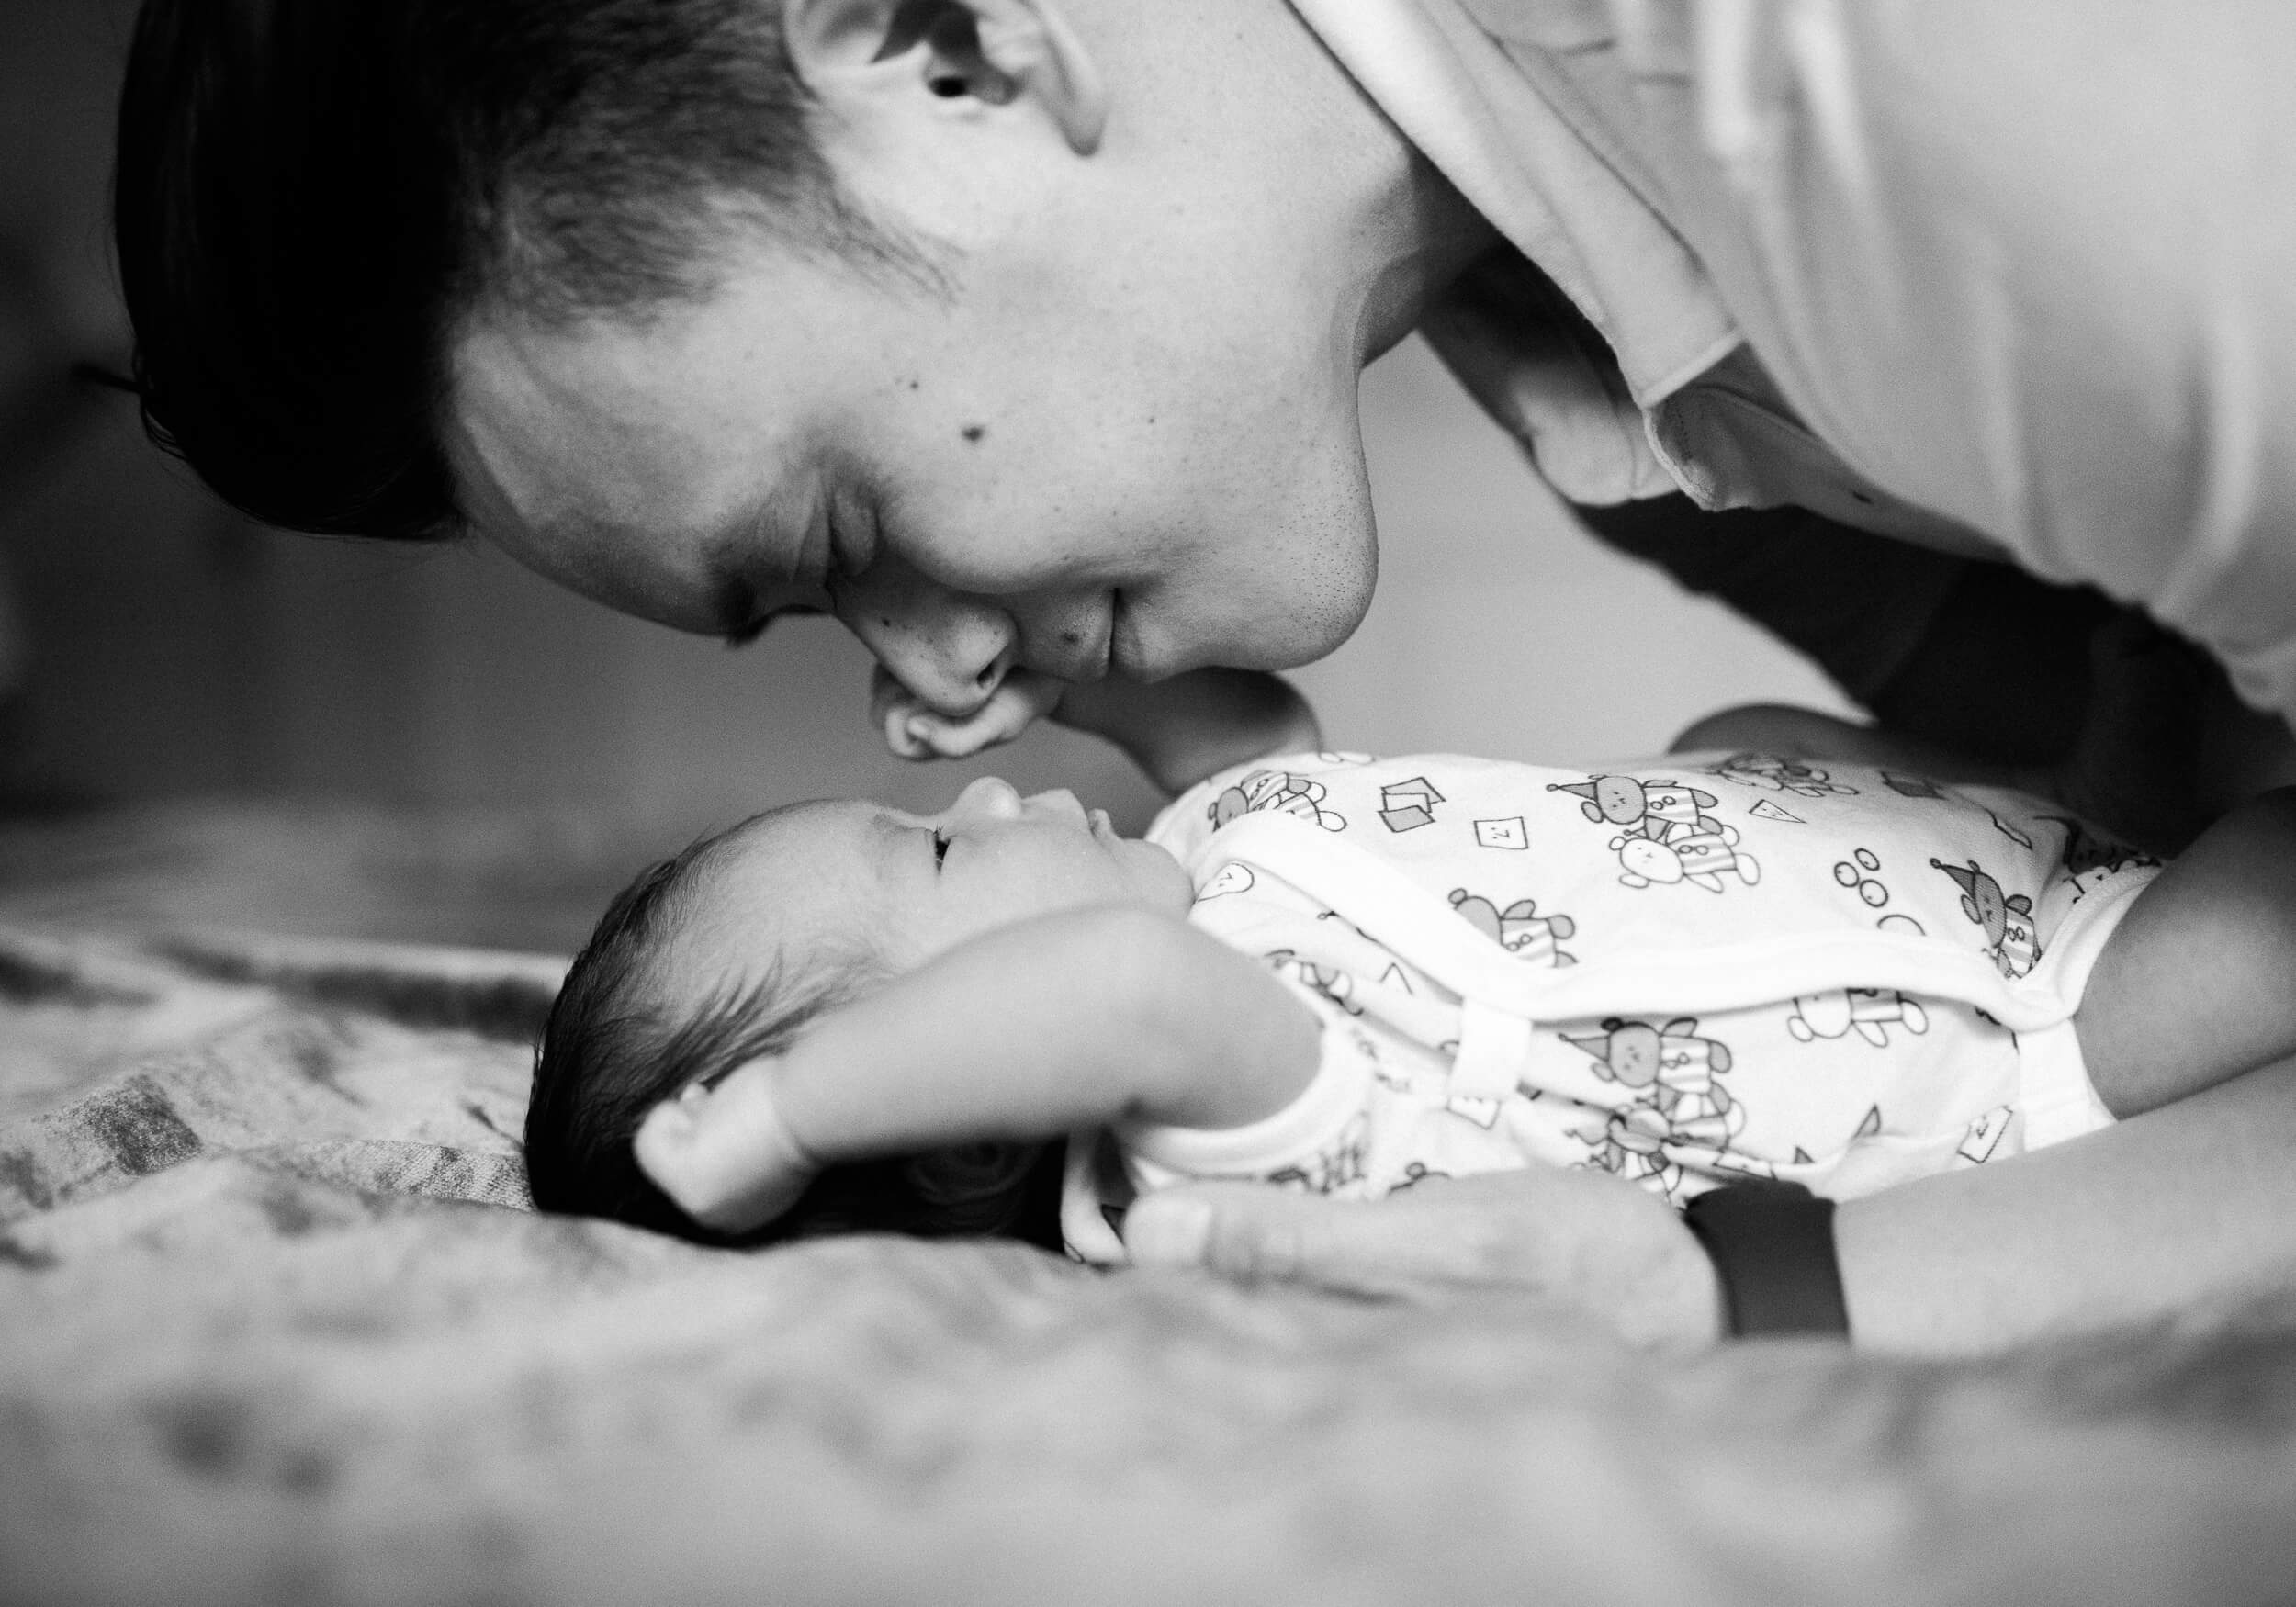 daddy and daughter in home lifestyle newborn photographer lindsey victoria photography park slope brooklyn ny